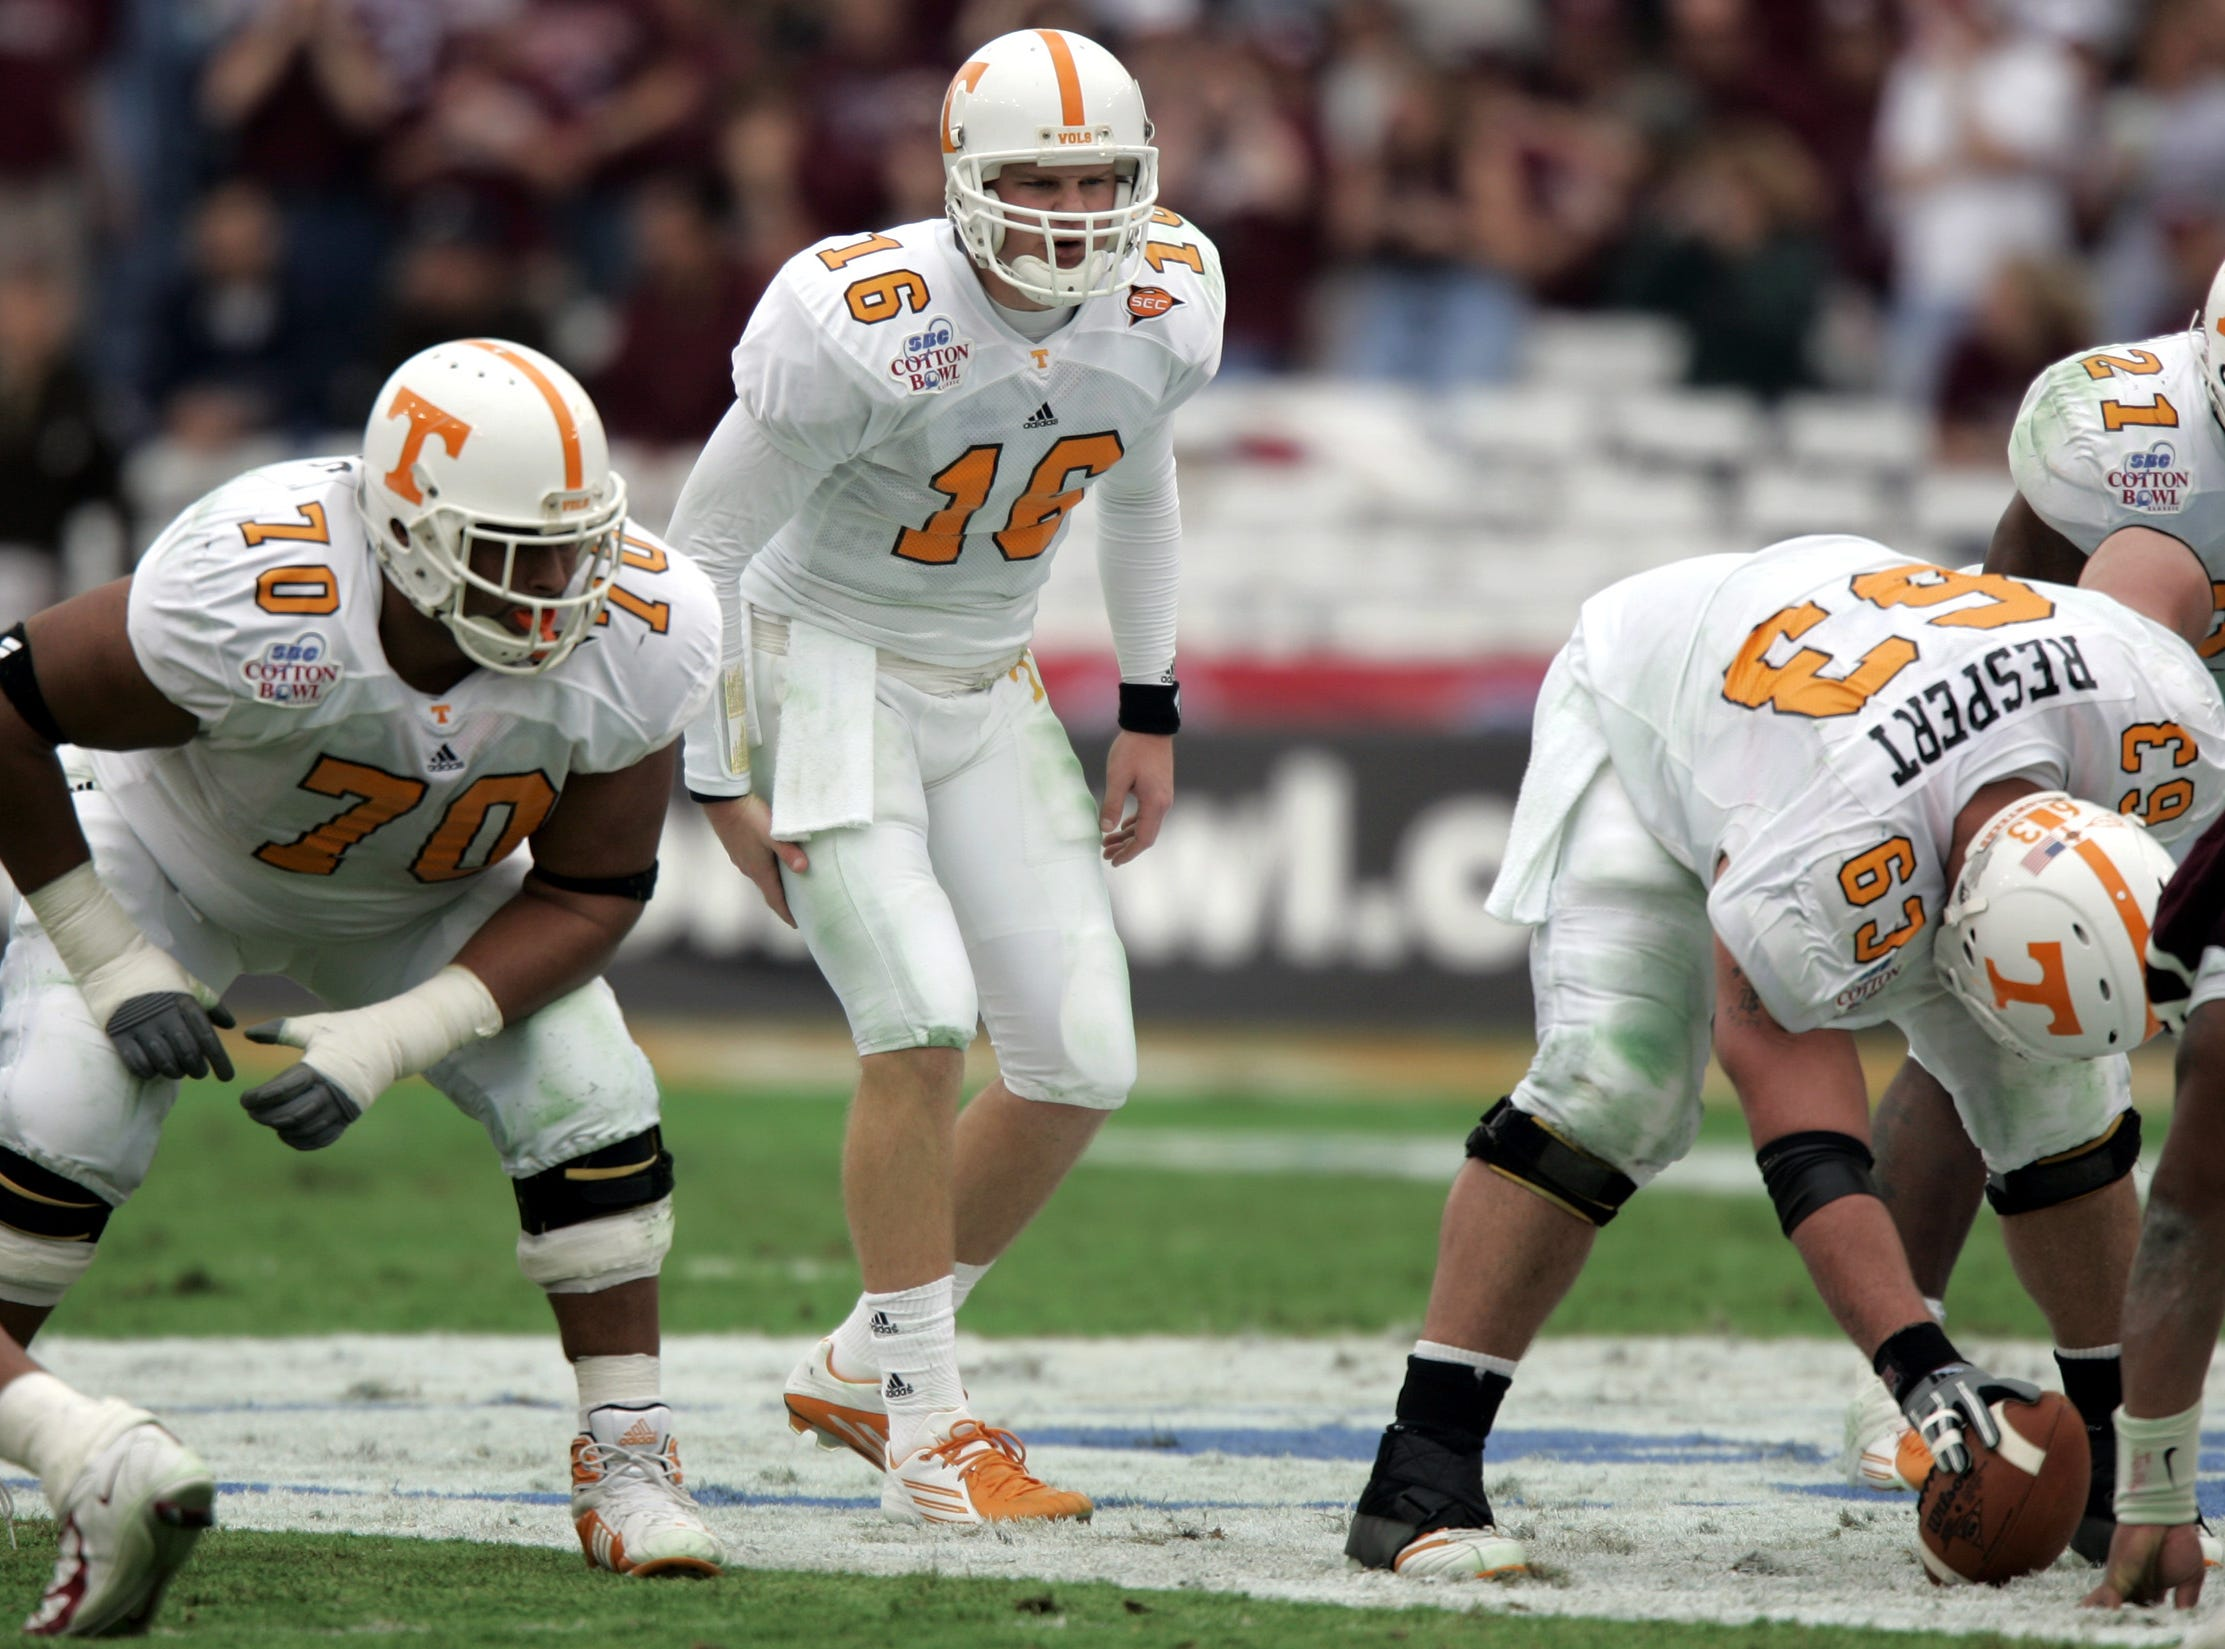 Offensive guard Cody Douglas, left, listens as  Tennessee quarterback Rick Clausen calls the play behind center Jason Respert in 2005.